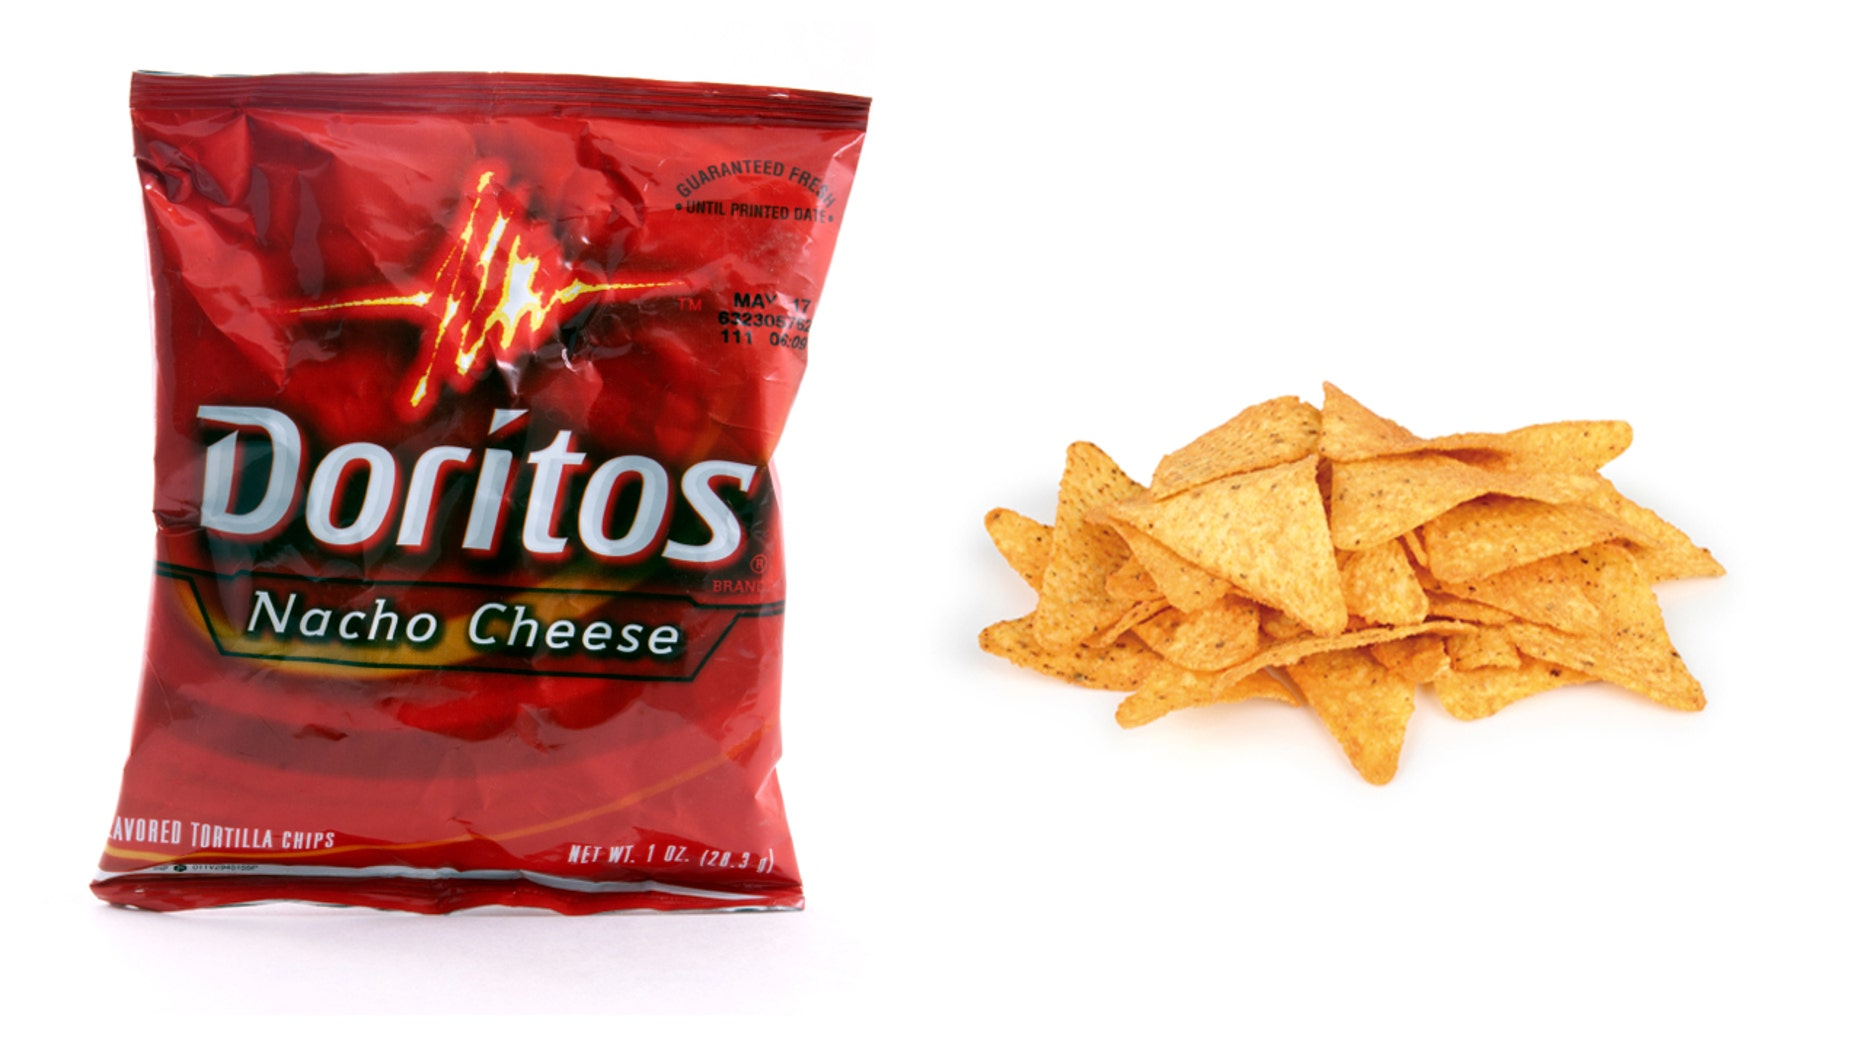 Doritos fans don't get much bang for their buck per bag.